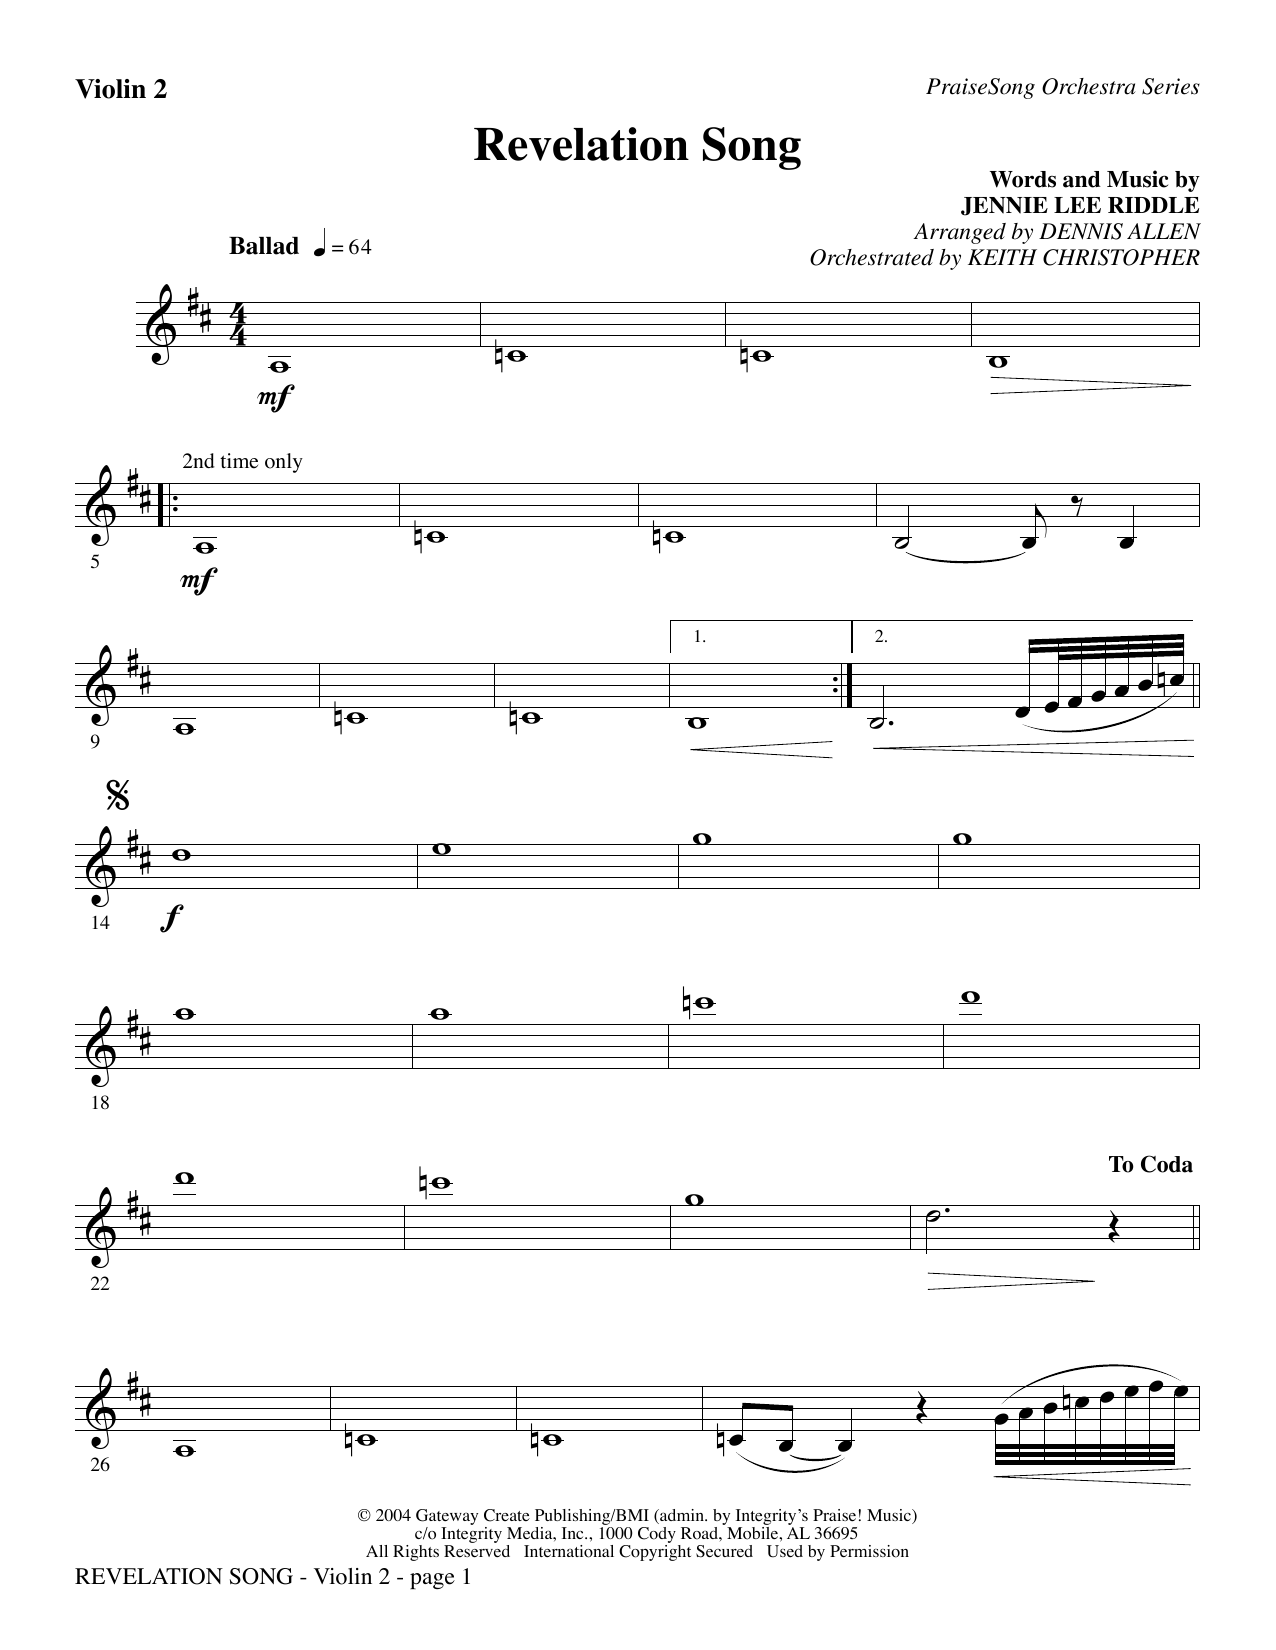 Revelation Song - Violin 2 Sheet Music